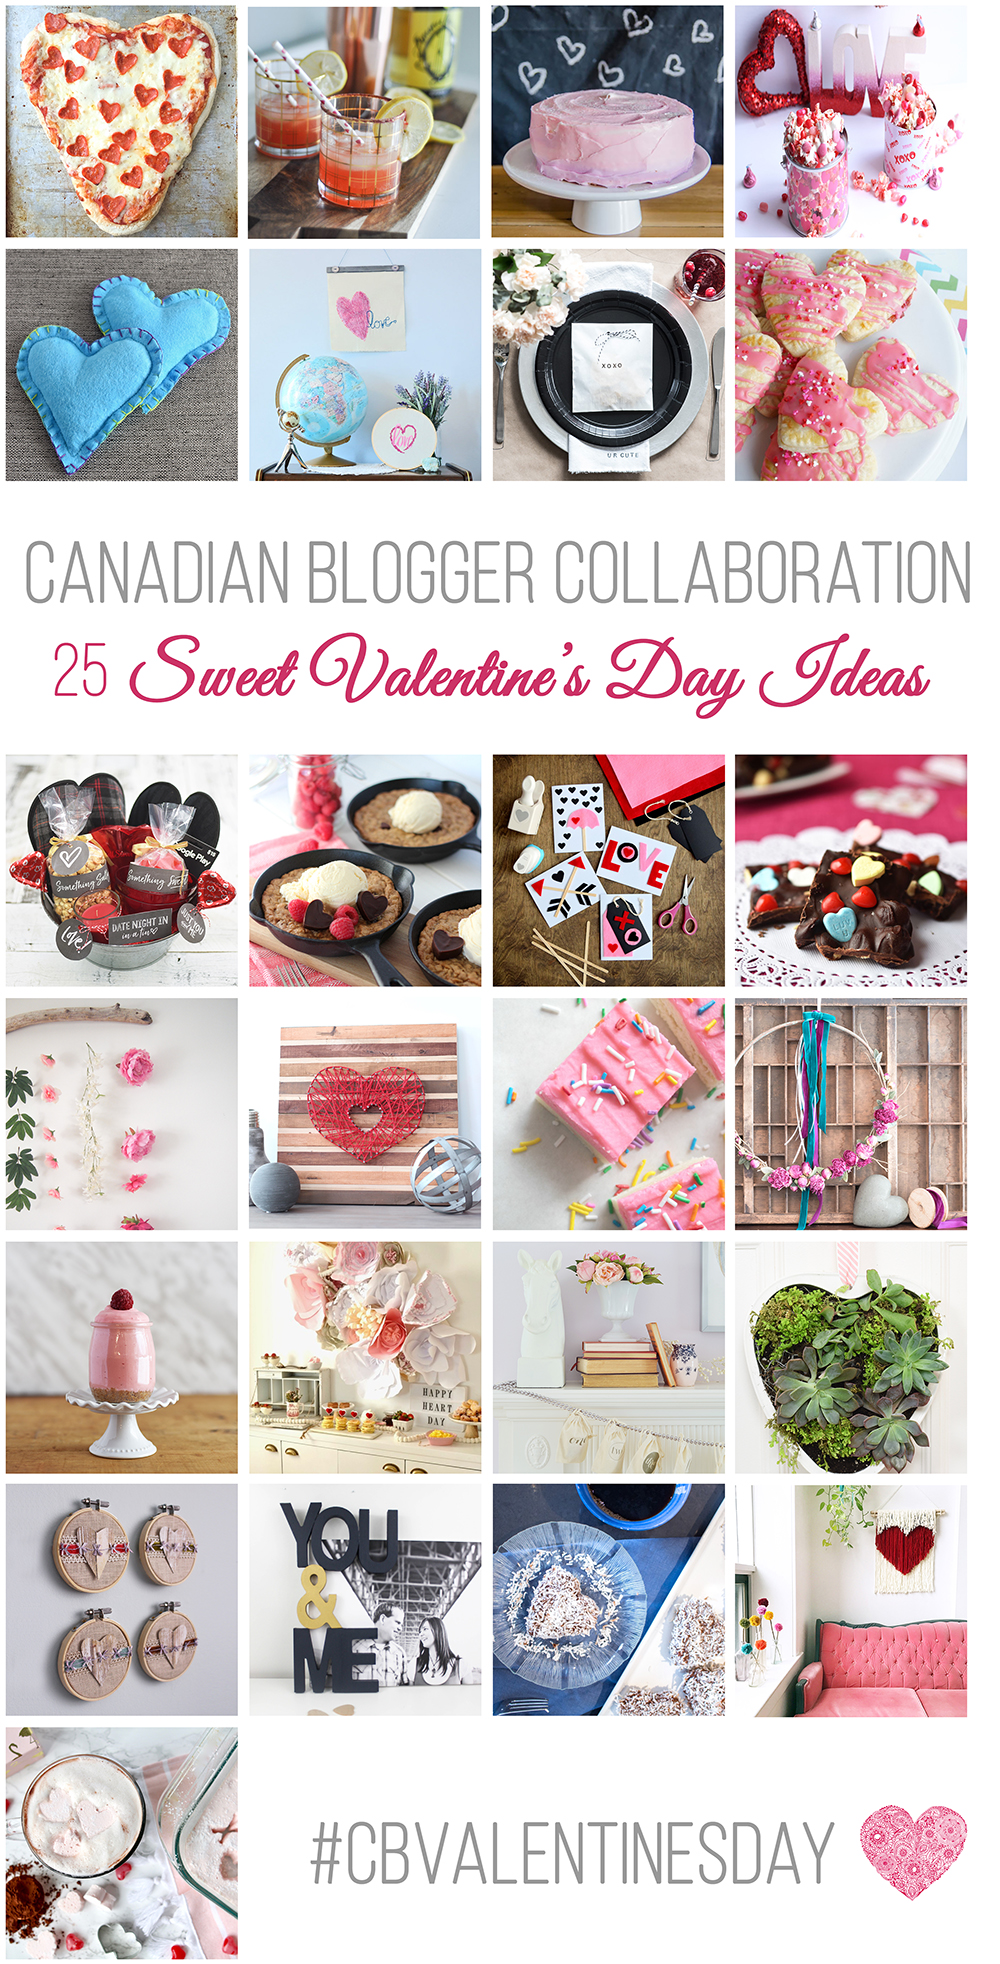 Such great ideas for valentines day! printables, crafts, and food- everything I need!